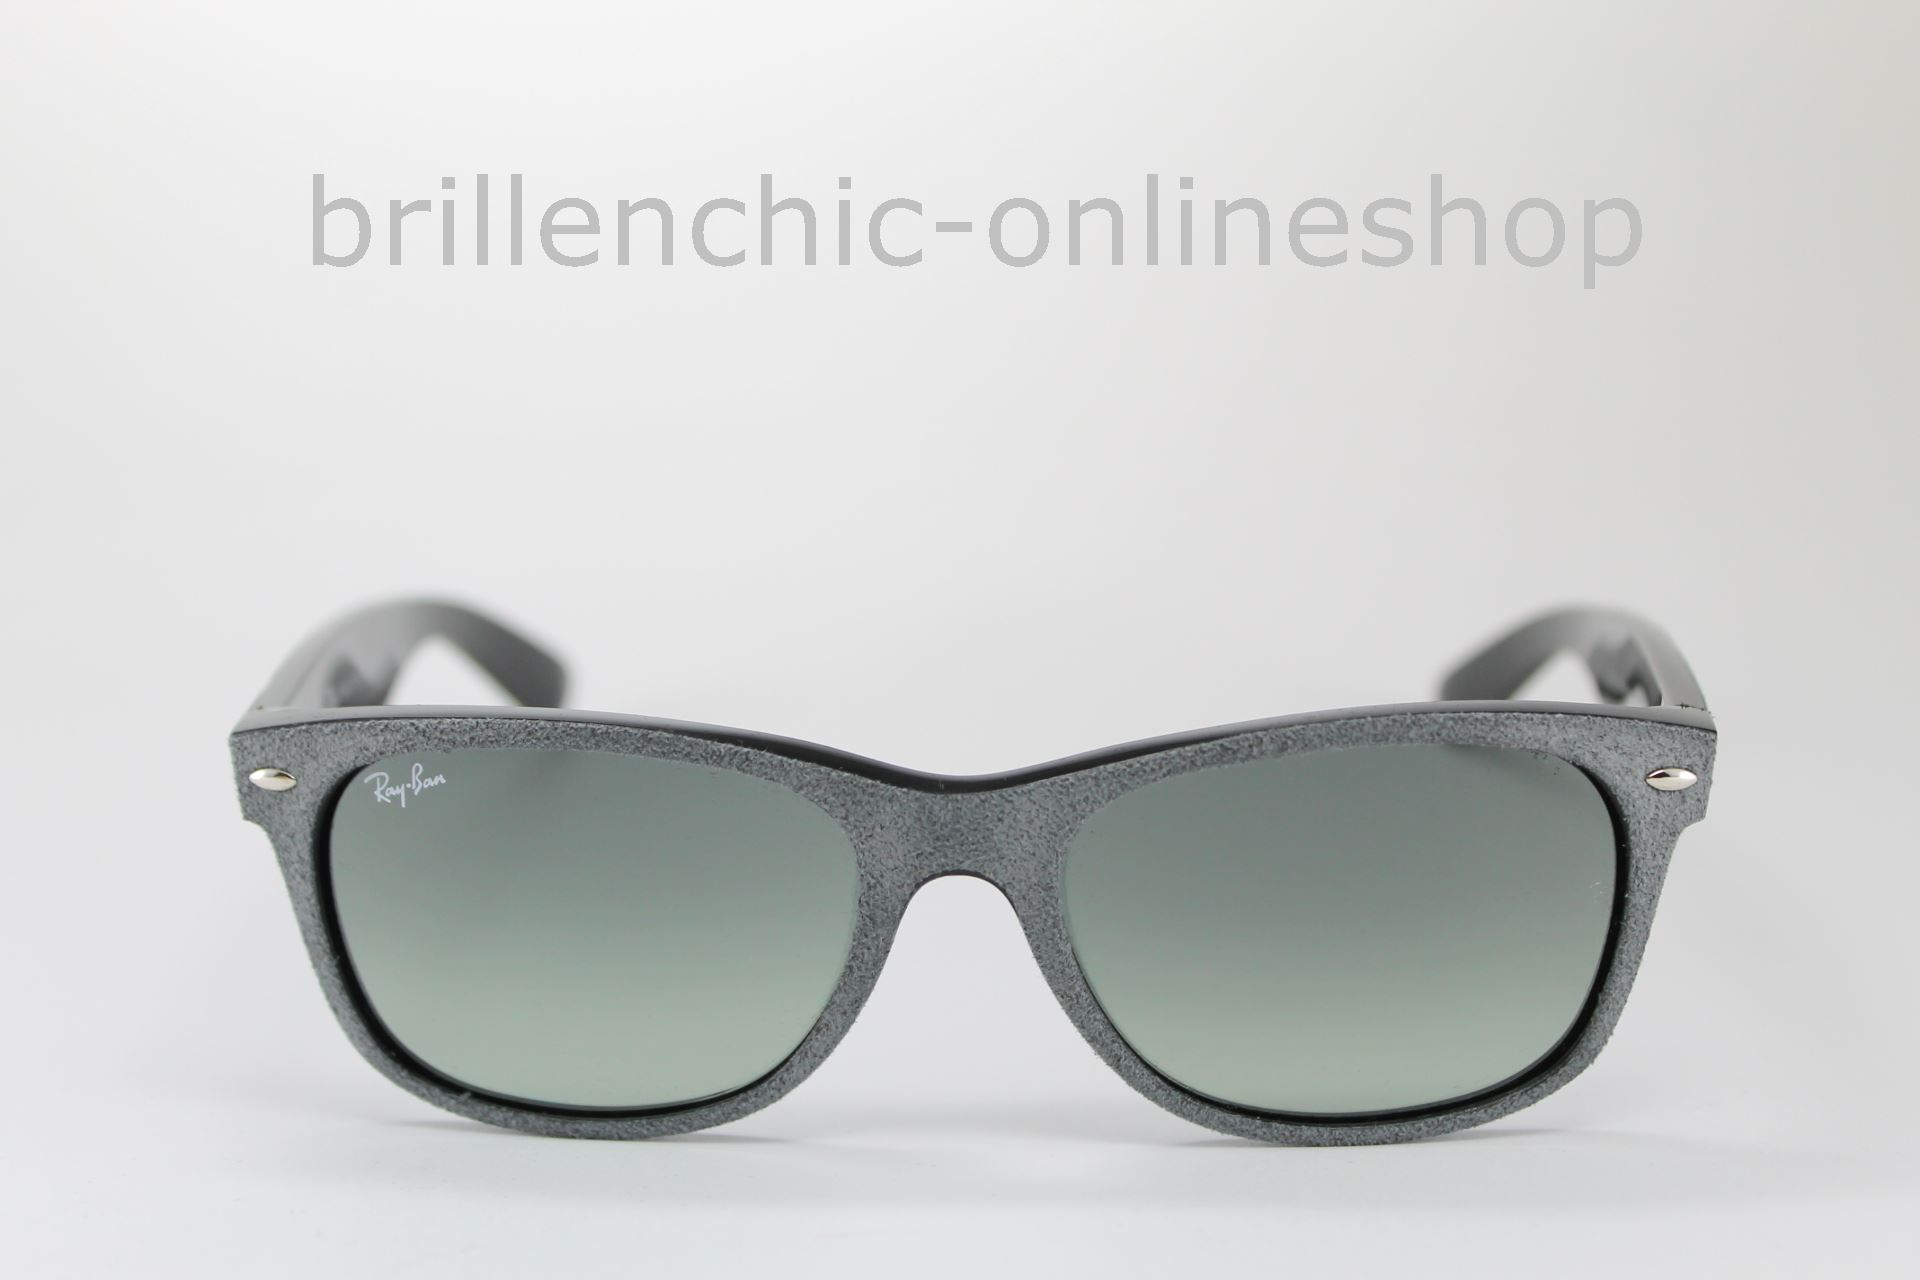 55bf2620a3 Brillenchic-onlineshop in Berlin - Ray Ban NEW WAYFARER RB 2132 6241 ...